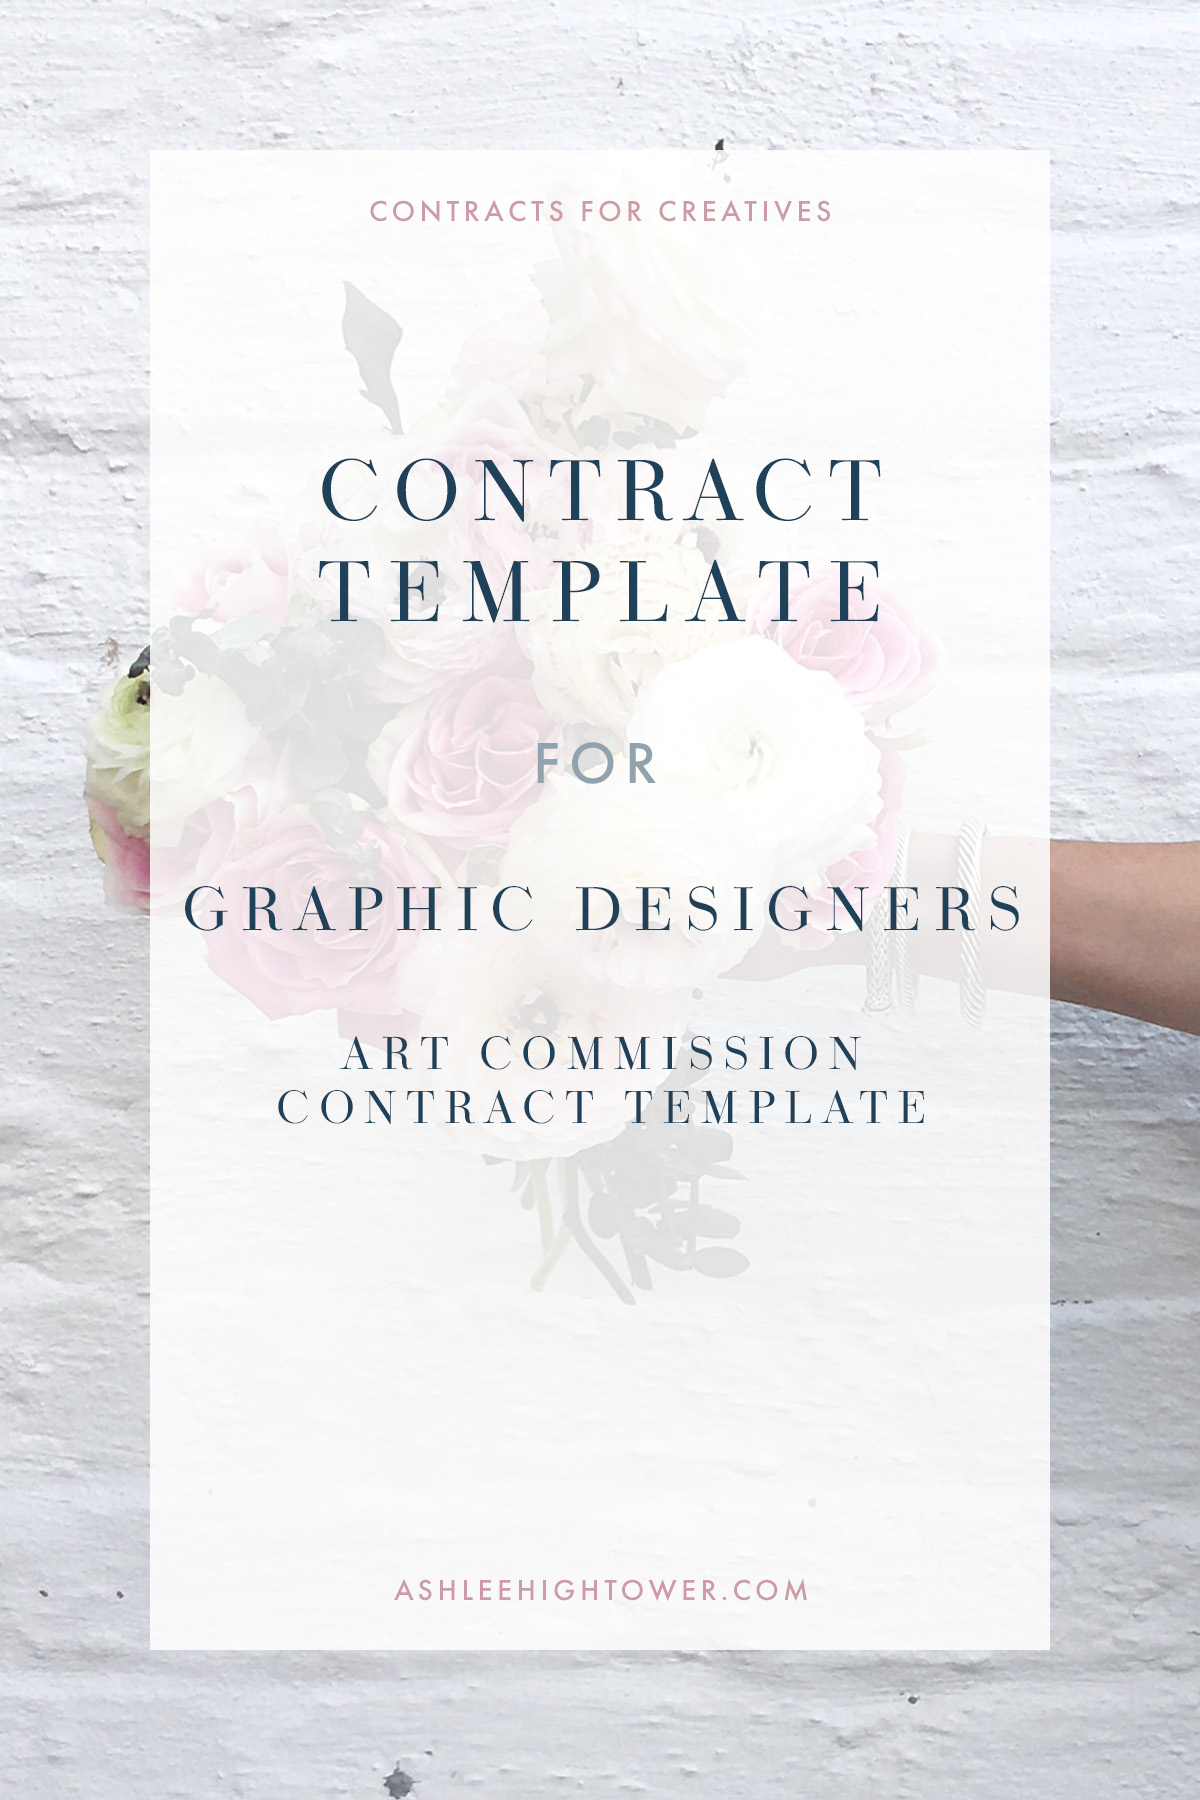 Artist Commission Contract Template